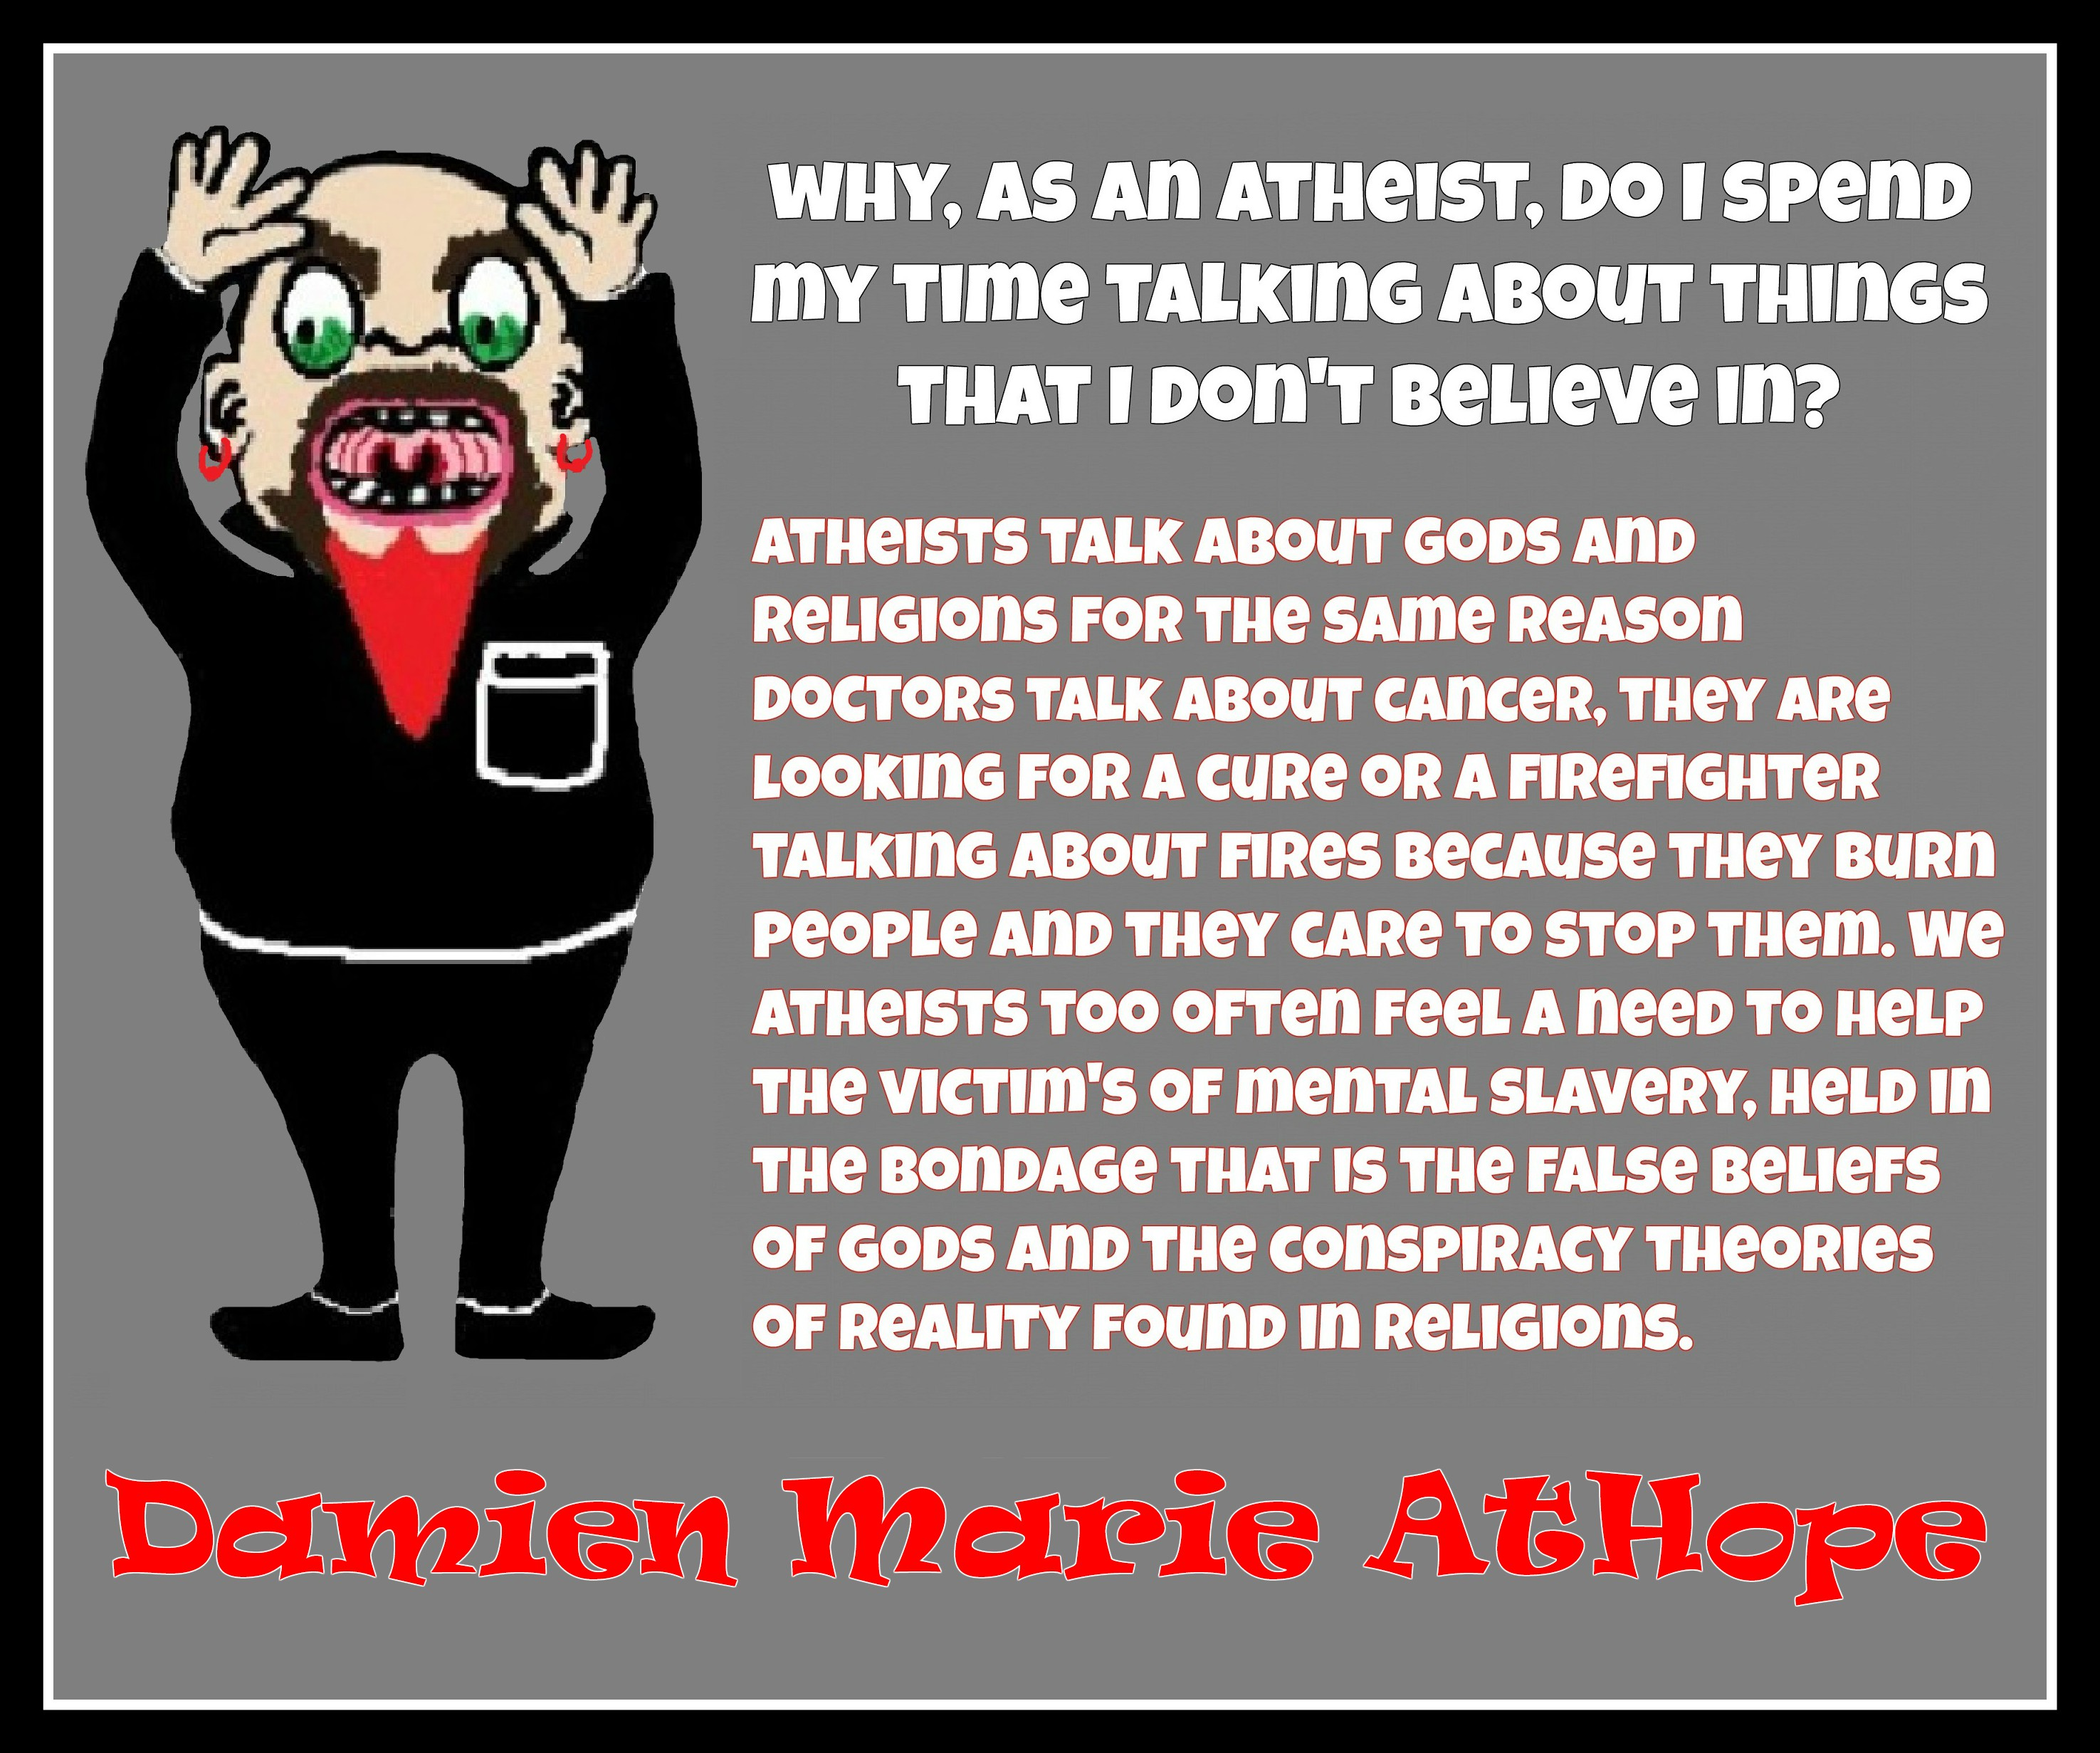 Atheism damien marie athope axiological atheist truth seeker for good biocorpaavc